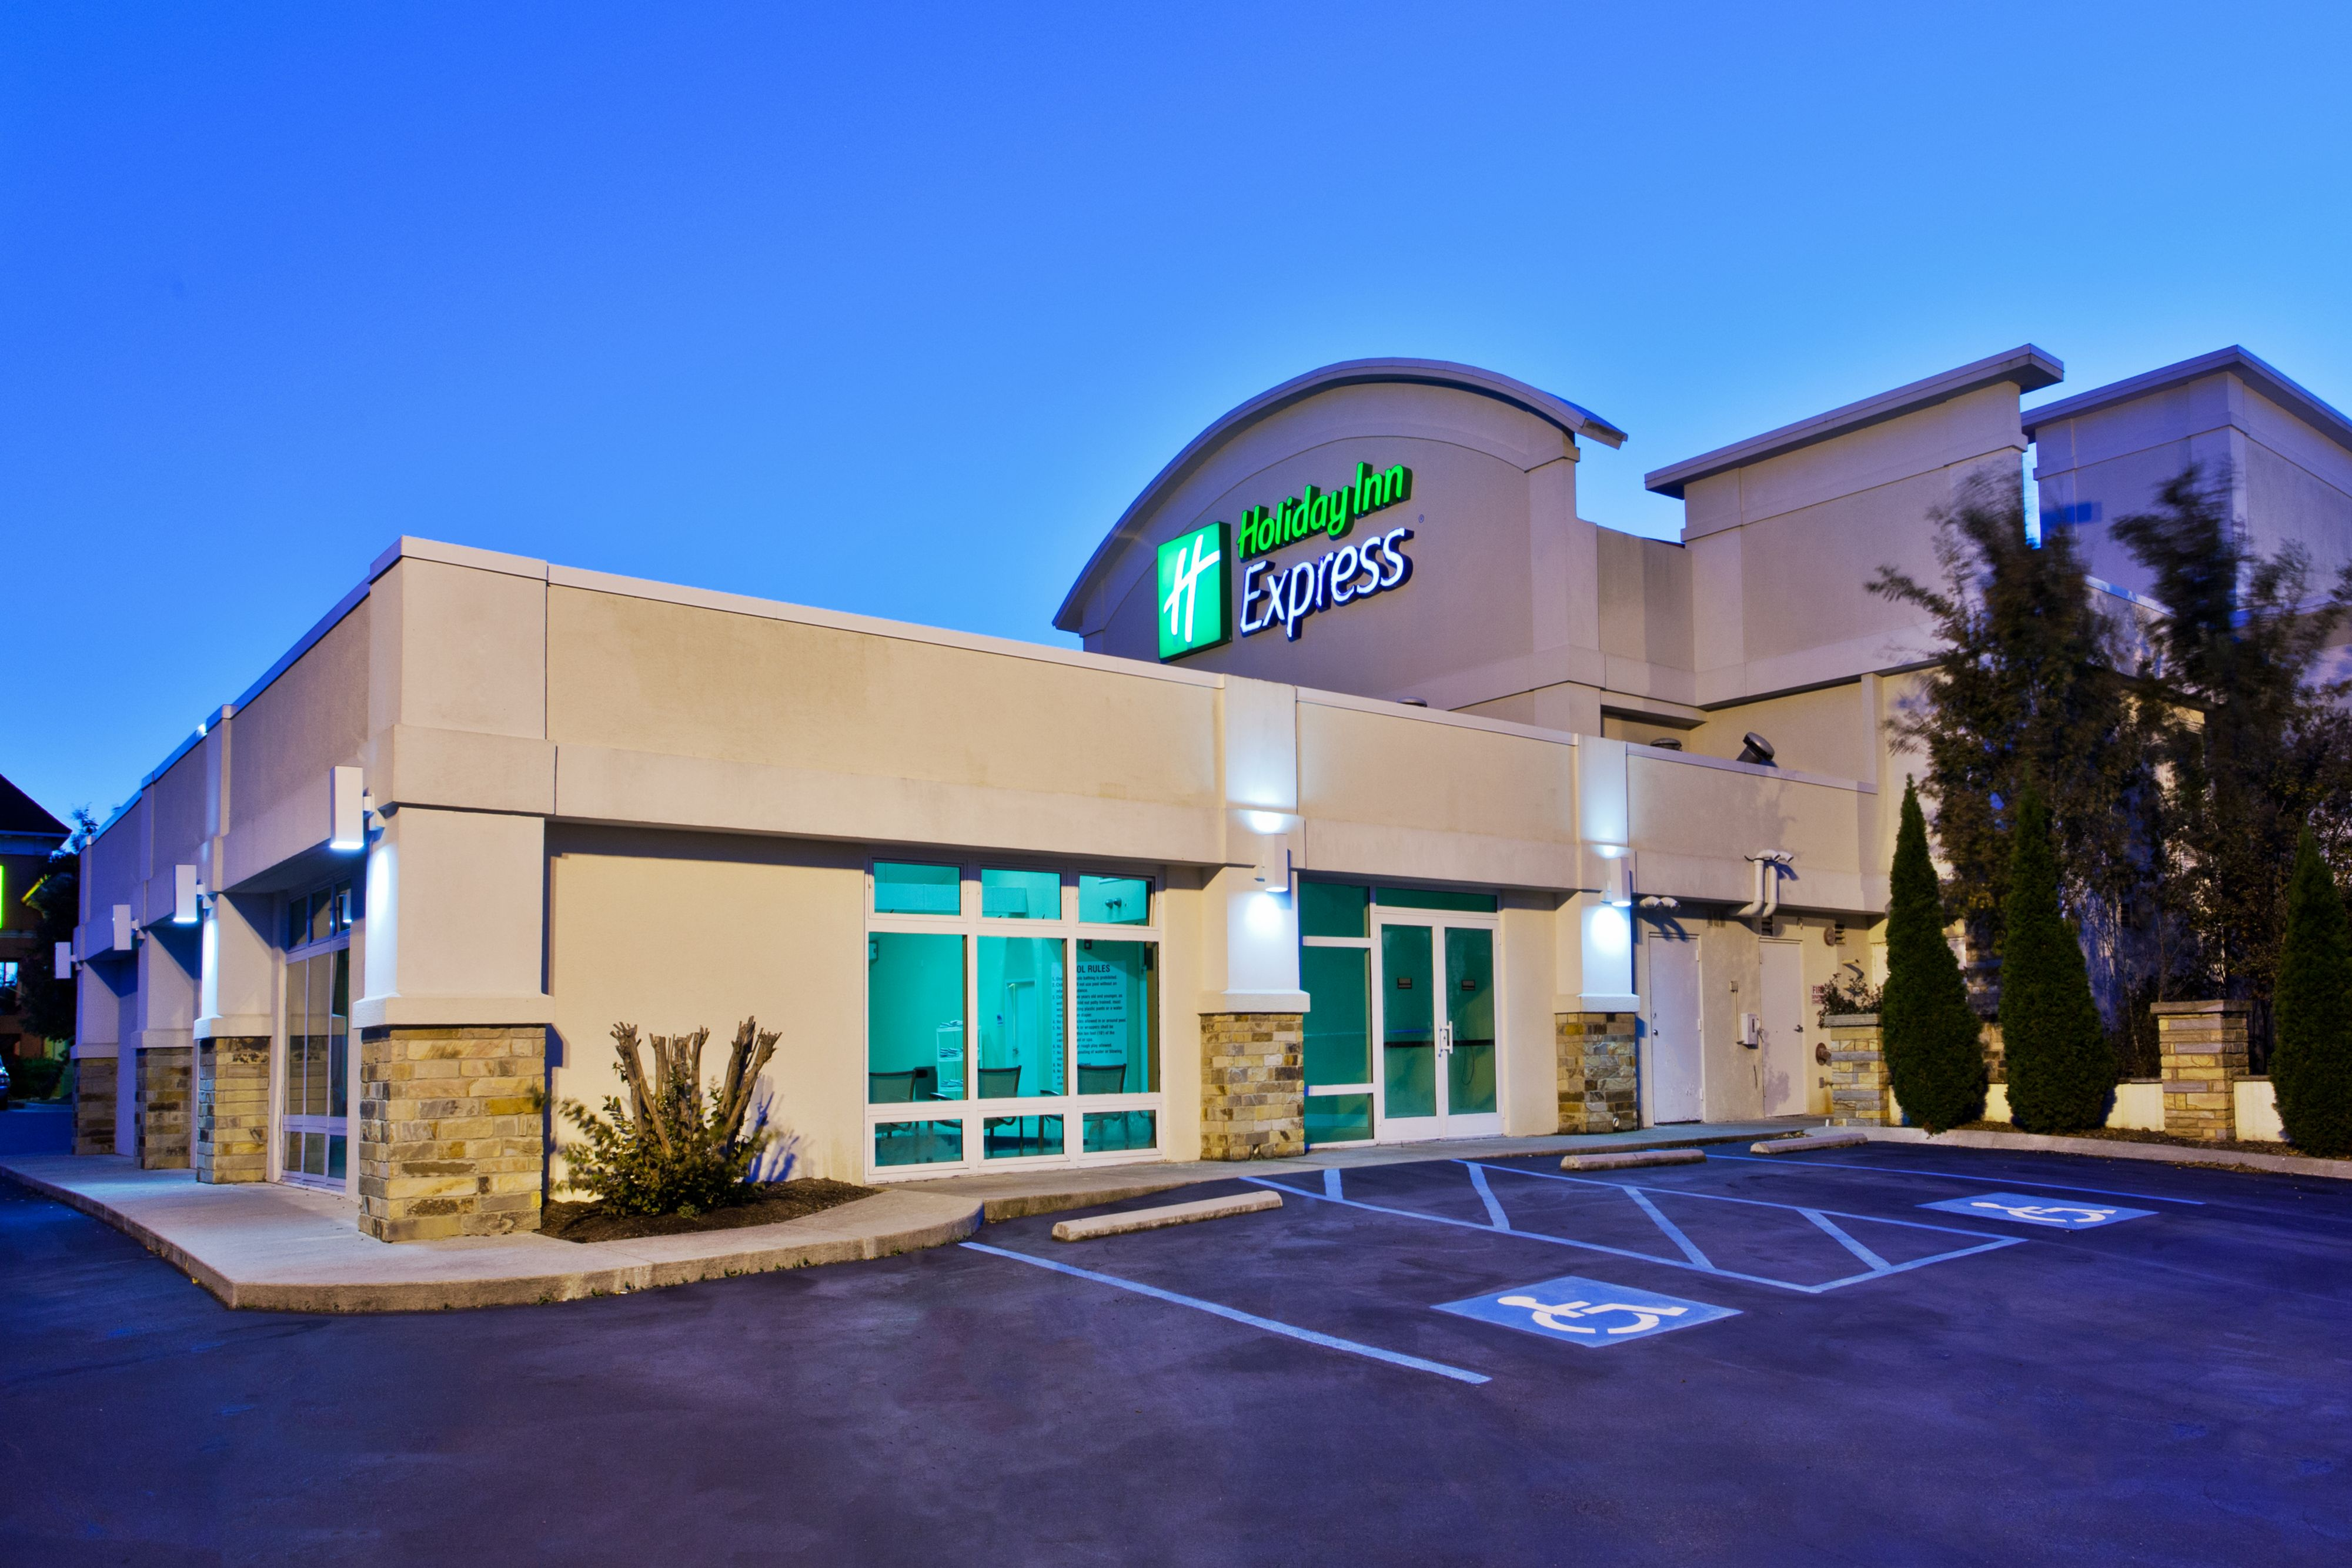 Holiday Inn Express Suites Dallas Addison At 4355 Beltway Drive Addison Tx On Fave